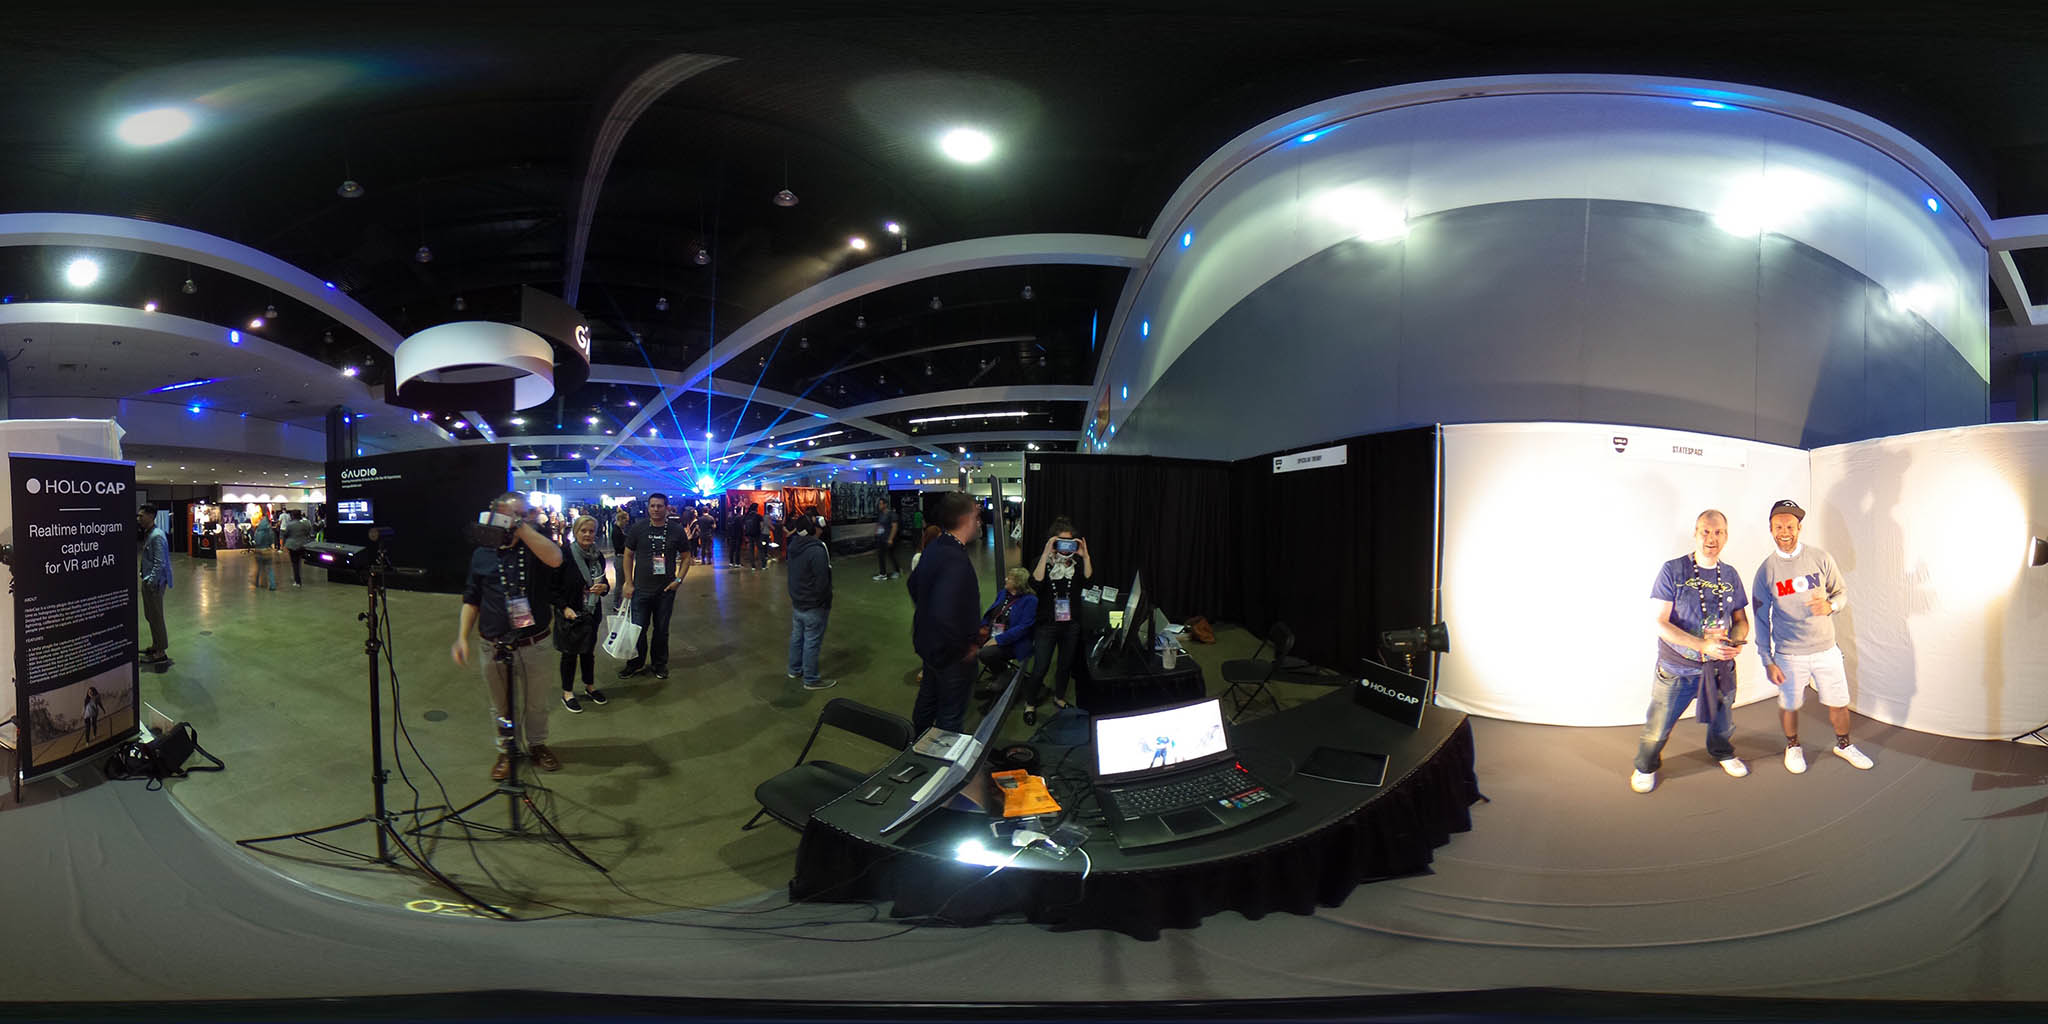 The HoloCap booth at VRLA 2017 with yours truly and Peder Børresen of HoloCap being captured in real-time while Stian Børresen of HoloCap watches in VR.